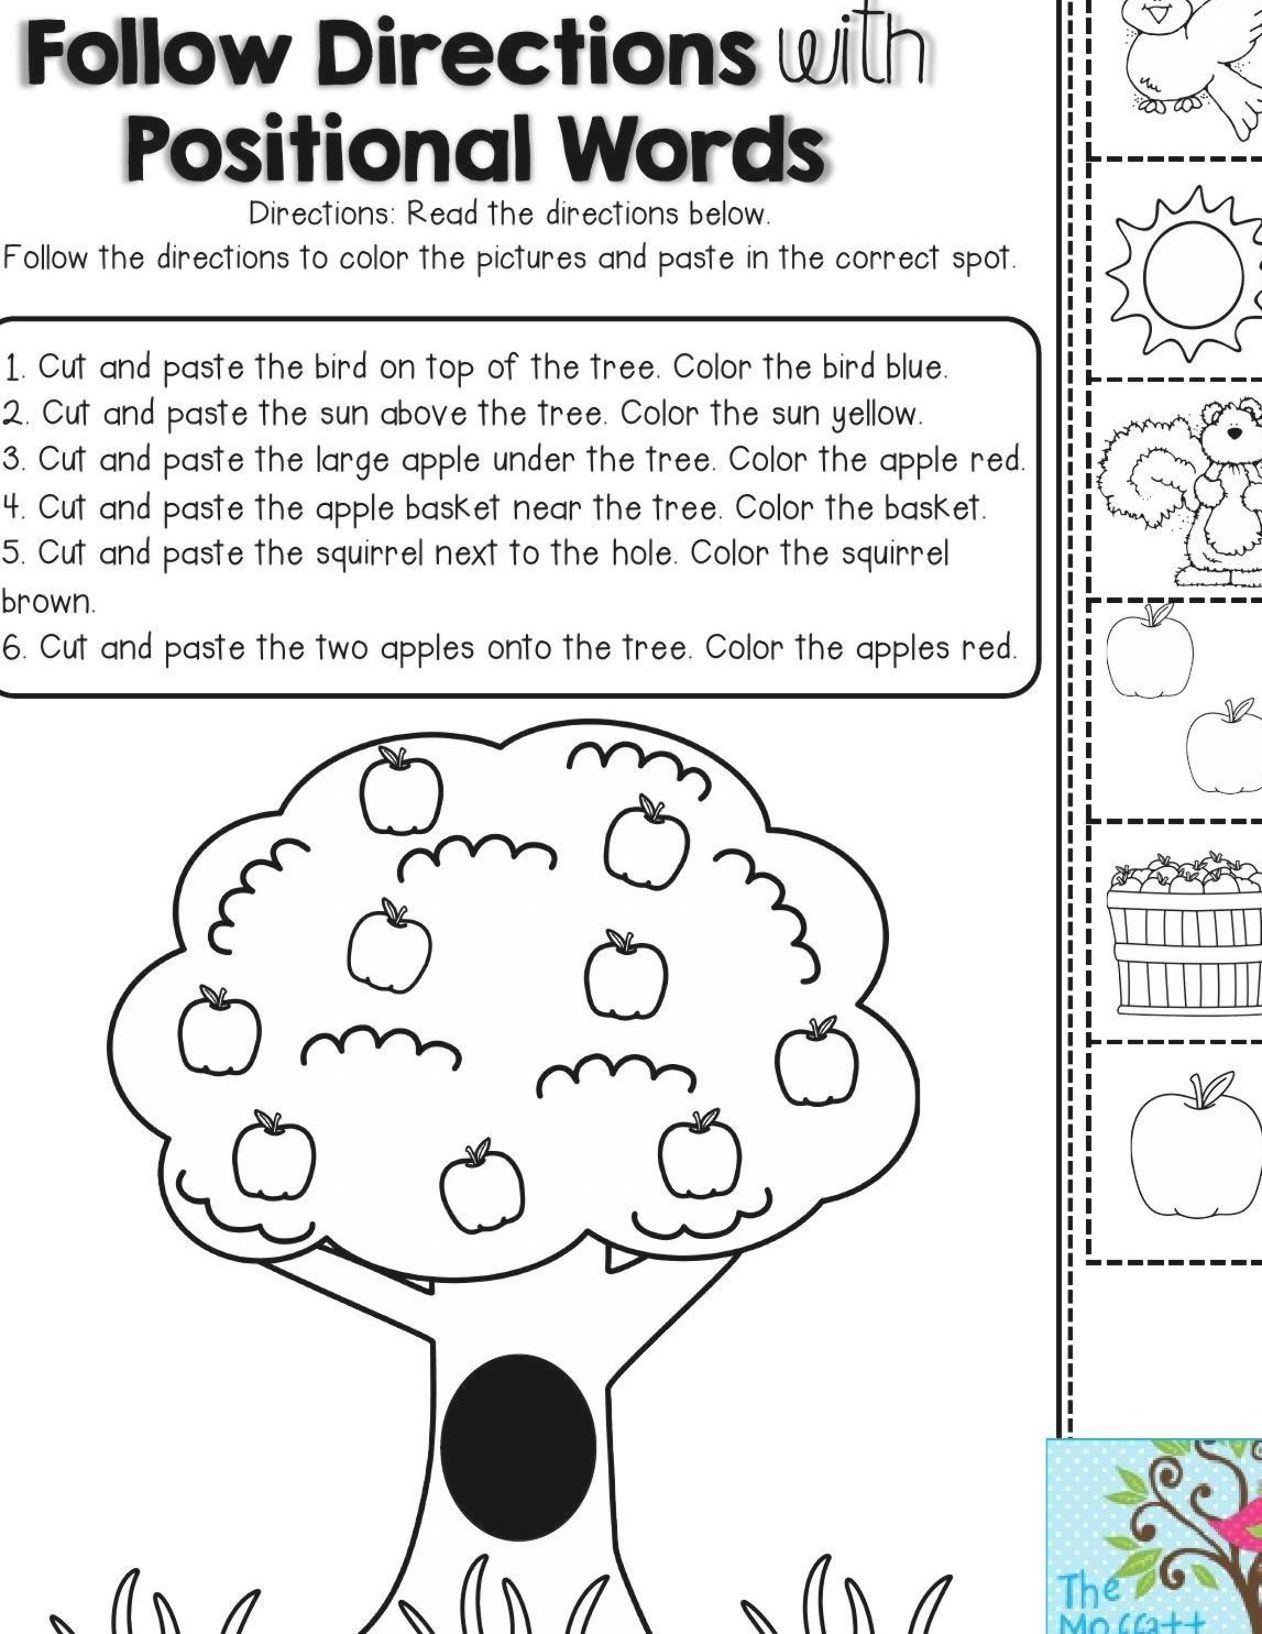 small resolution of Follow Directions with Positional Words- fun activity for First Grade to  help stu…   Listening activities for kids